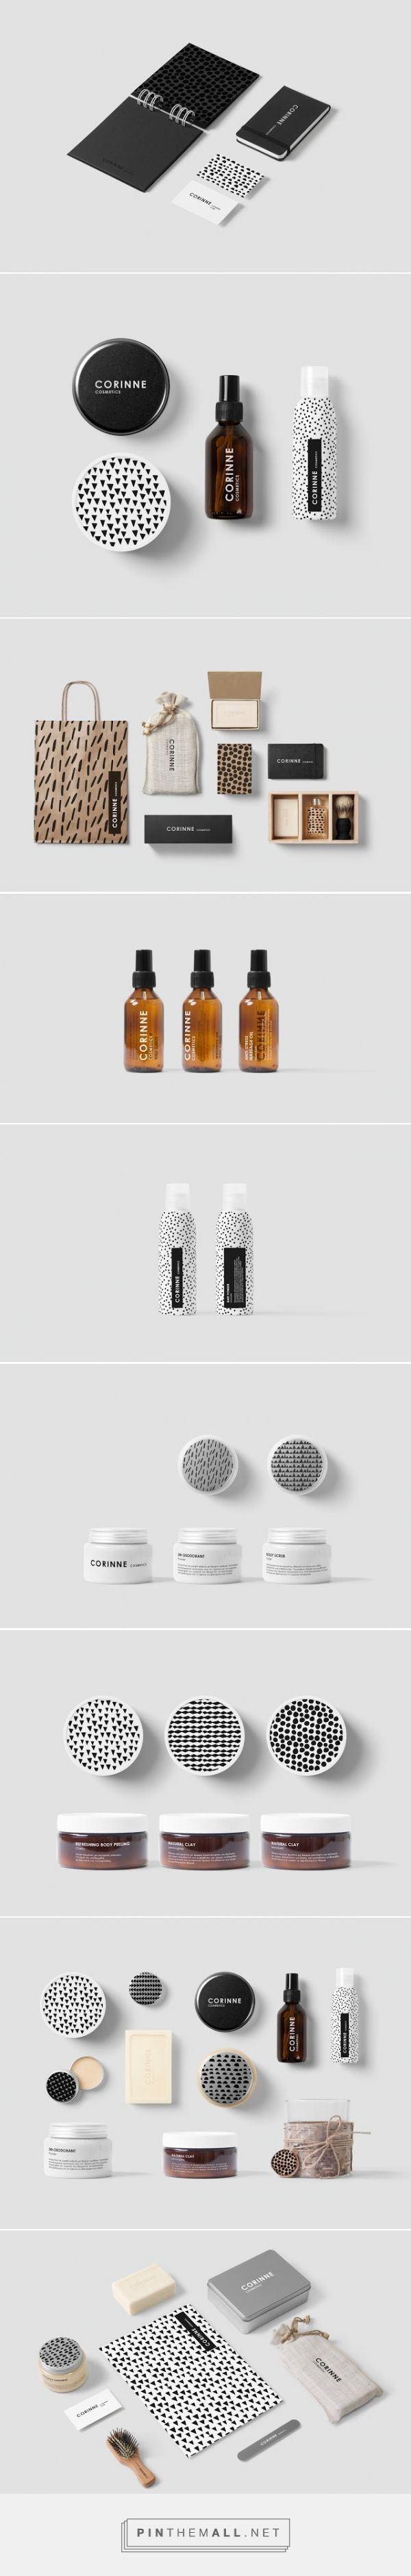 Corinne #Cosmetics #packaging by Anna Trympali - http://www.packagingoftheworld.com/2015/03/corinne-cosmetics.html